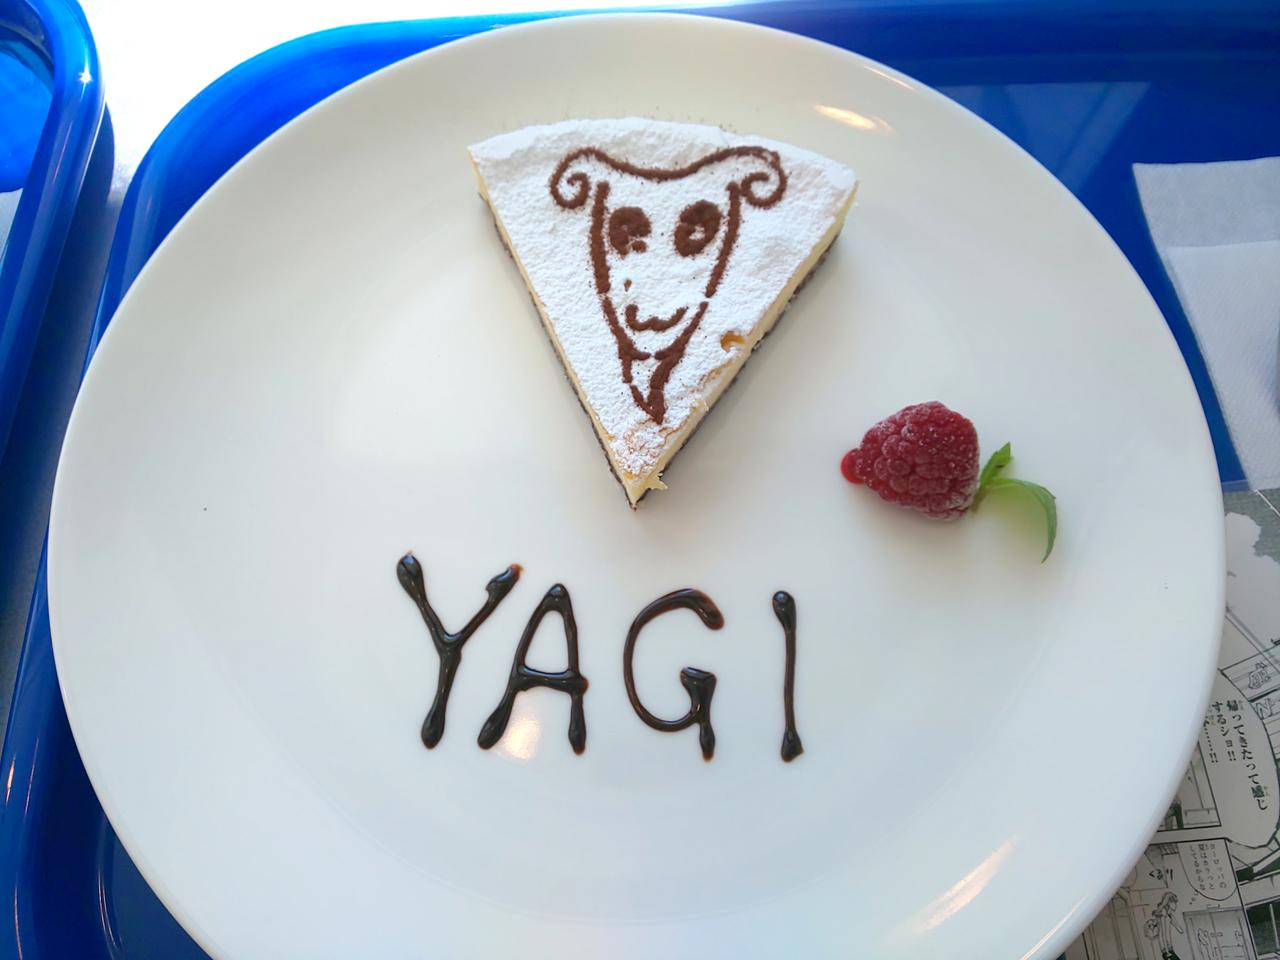 Images : 巻島裕介のYAGIチーズケーキ(石ノ森萬画館)※2019年10月14日まで